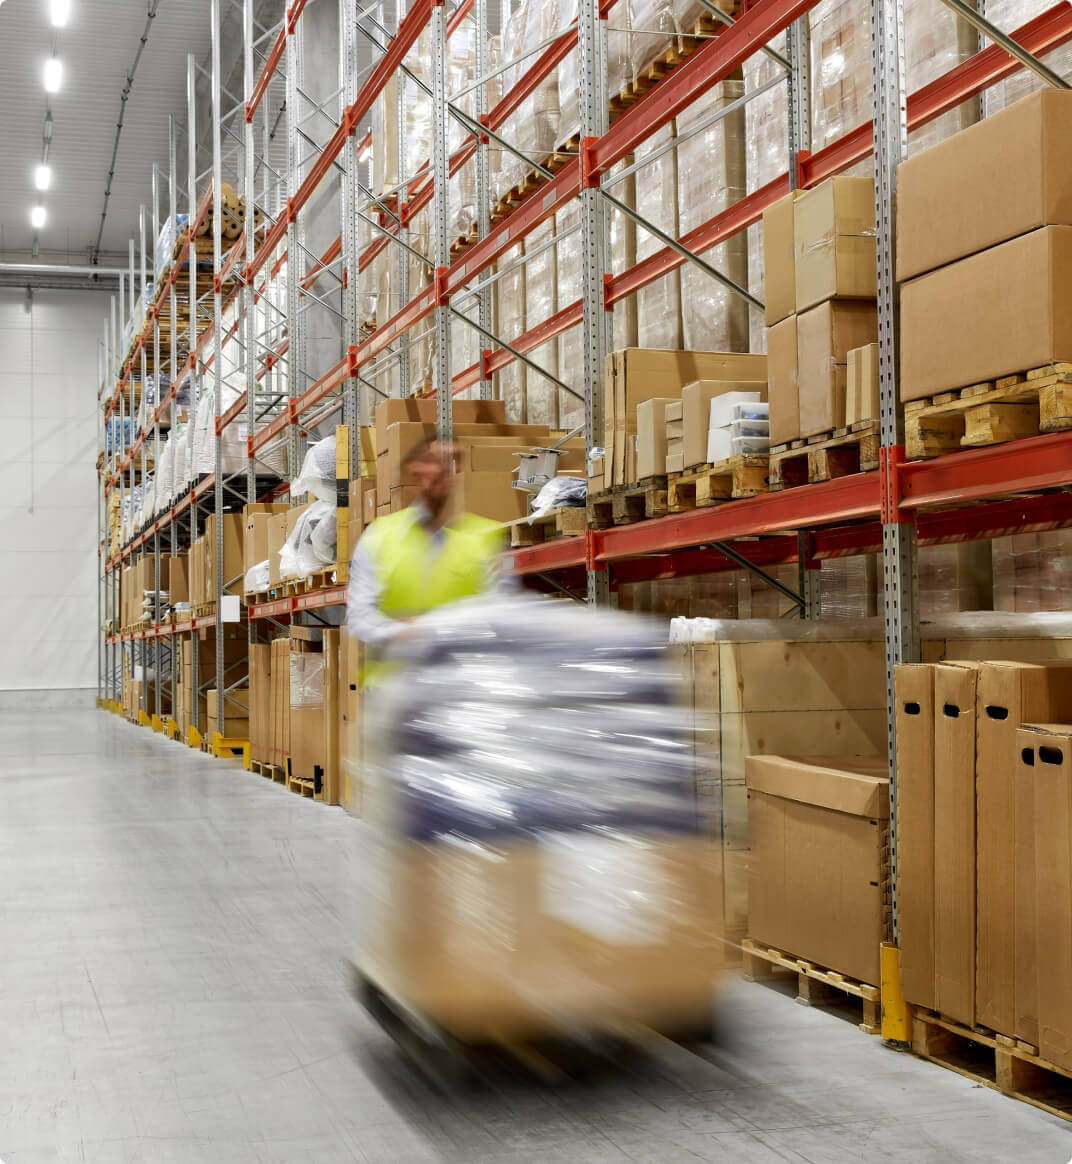 Digital Warehouse - The Future of Warehousing